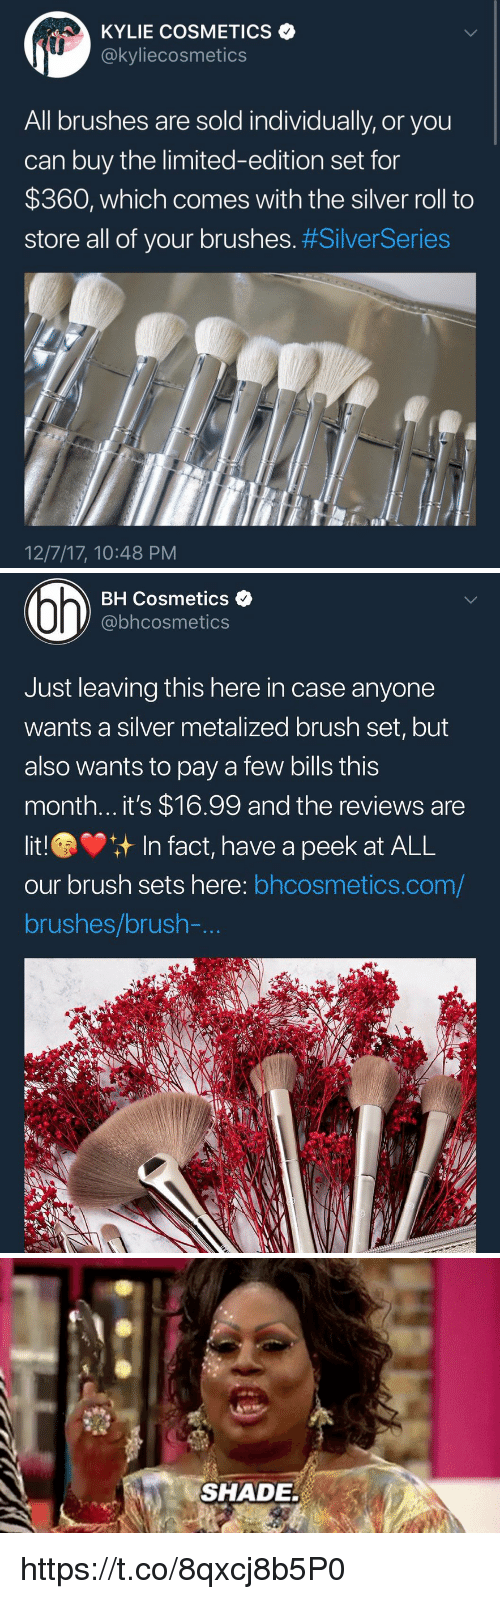 Shade, Limited, and Silver: KYLIE COSMETICS  @kyliecosmetics  All brushes are sold individually, or you  can buy the limited-edition set for  $360, which comes with the silver roll to  store all of your brushes. #SilverSeries  fin  12/7/17, 10:48 PM   BH Cosmetics <  @bhcosmetics  Just leaving this here in case anyone  wants a silver metalized brush set, but  also wants to pay a few bills this  month... it's $16.99 and the reviews are  litIn fact, have a peek at ALL  our brush sets here: bhcosmetics.com/  brushes/brush-   SHADE https://t.co/8qxcj8b5P0